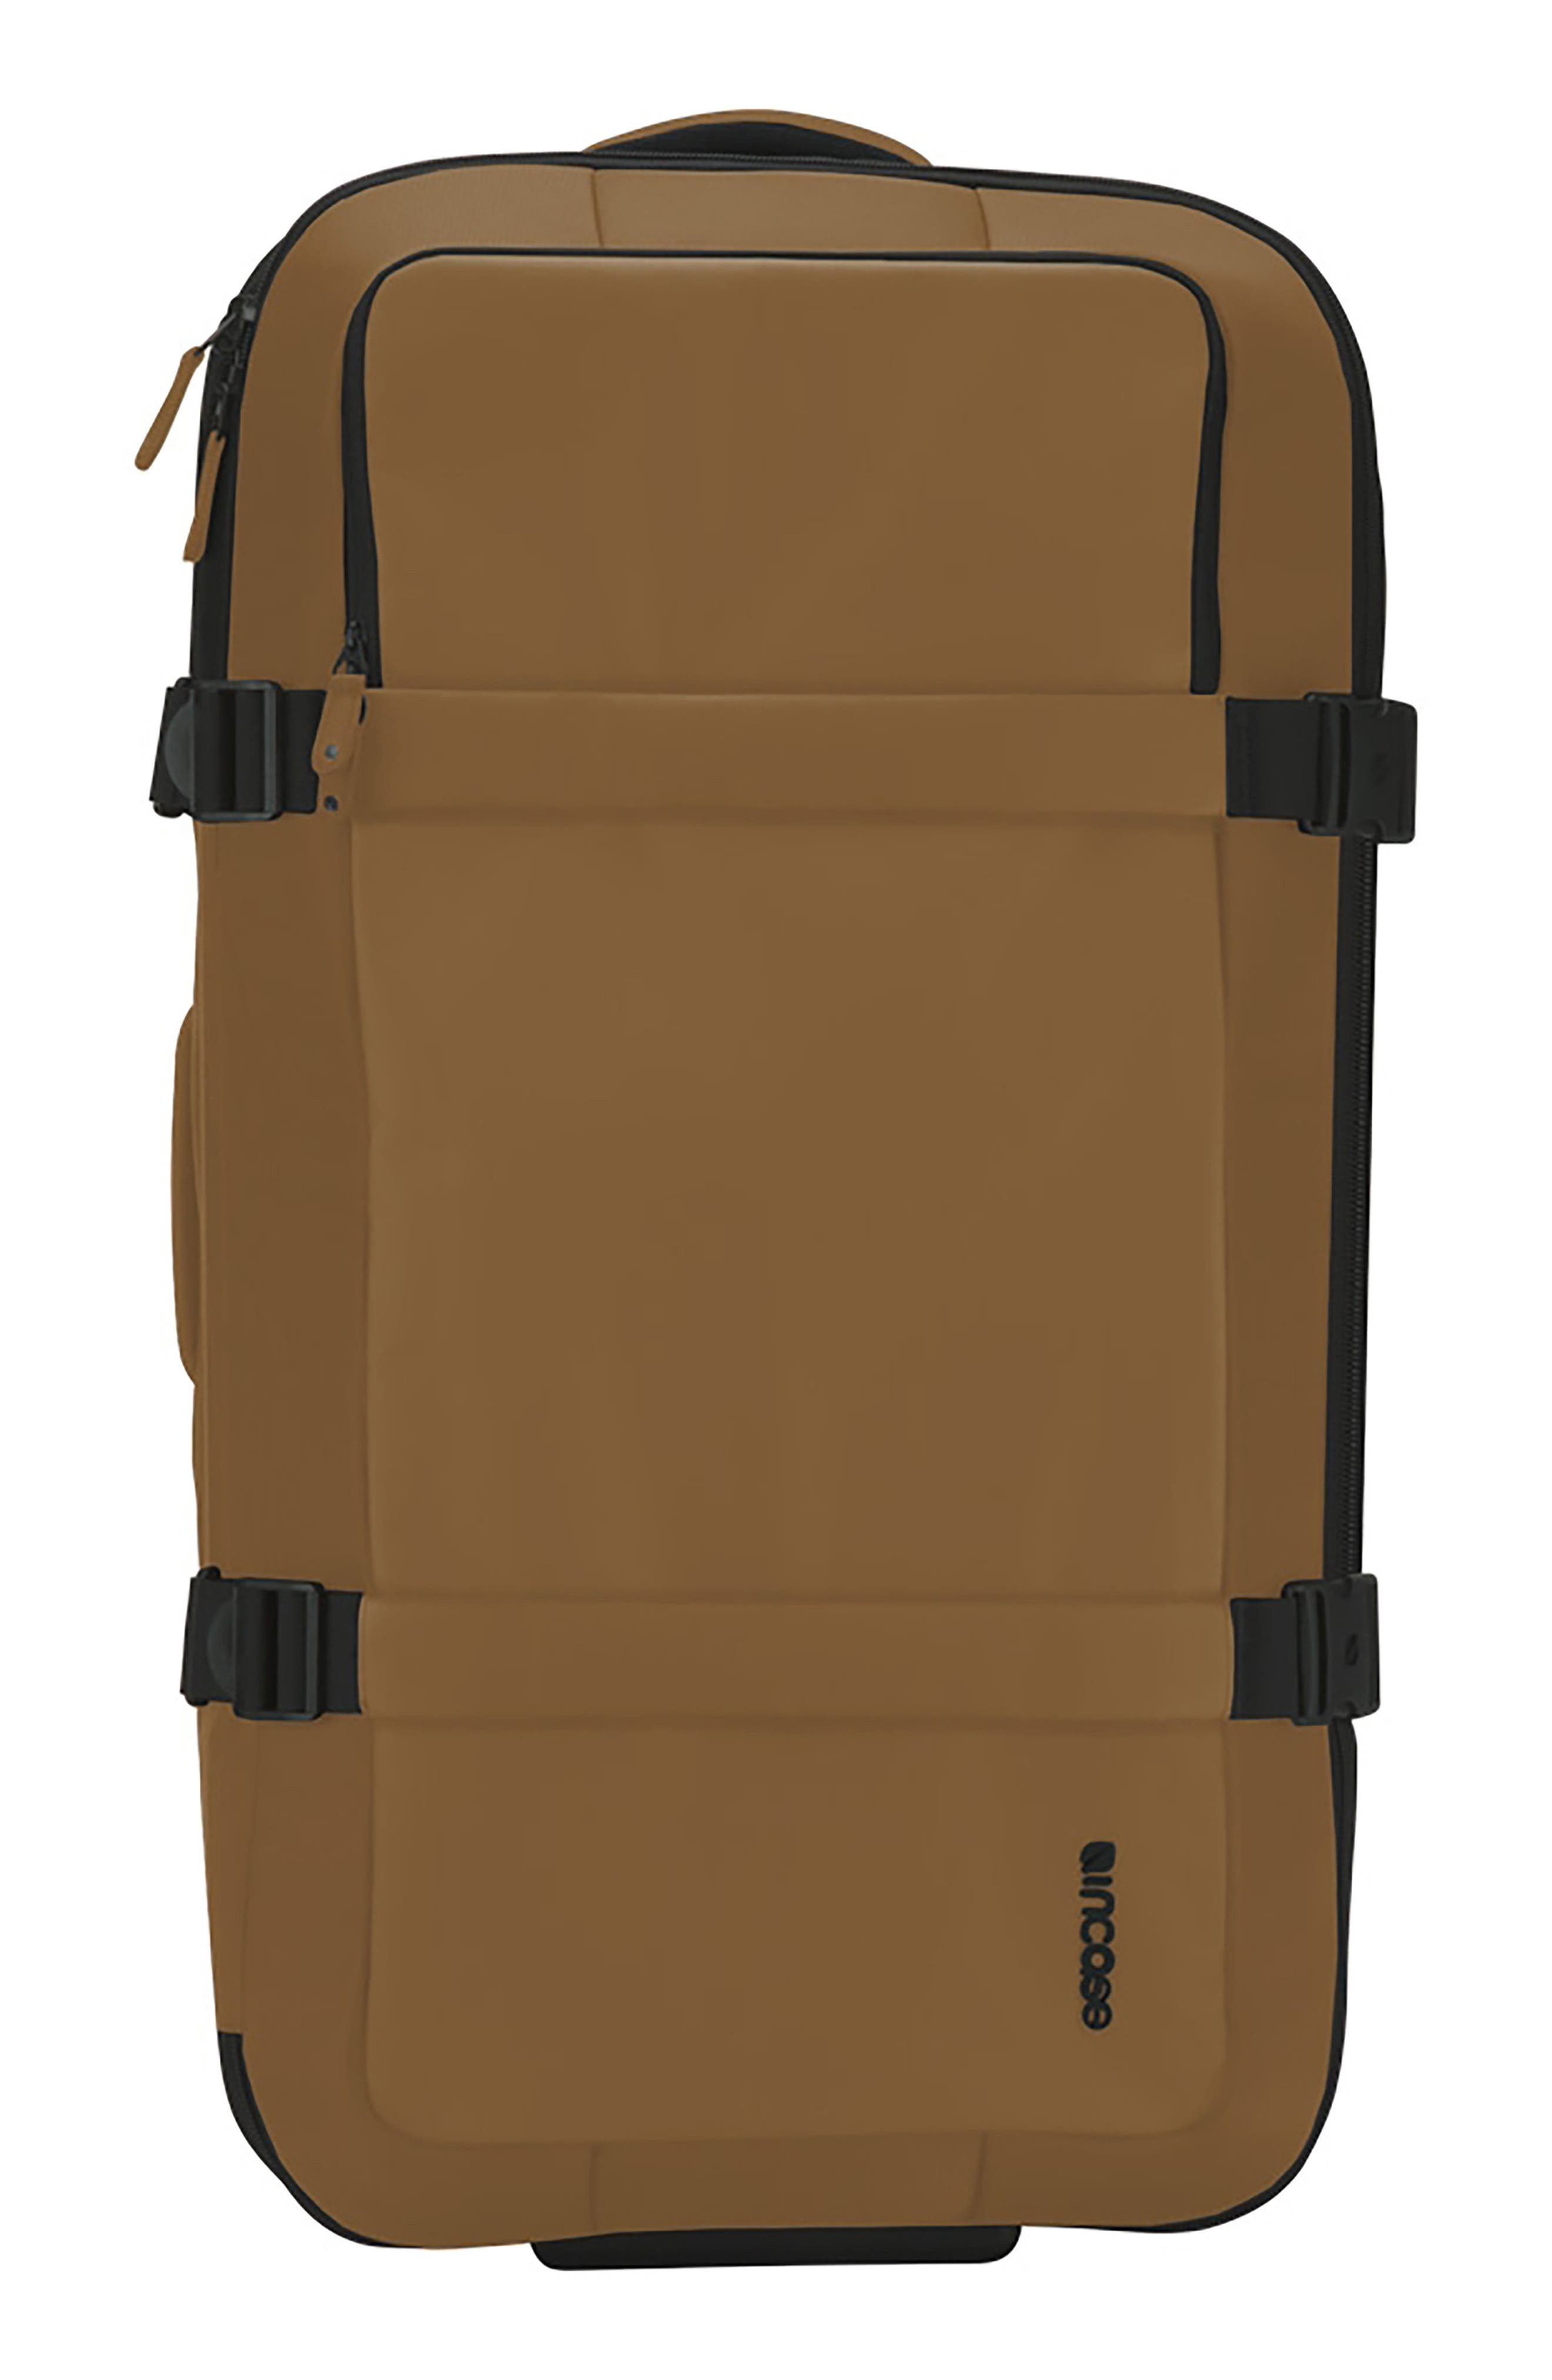 Incase Designs TRACTO 35 Inch Wheeled Duffel Bag